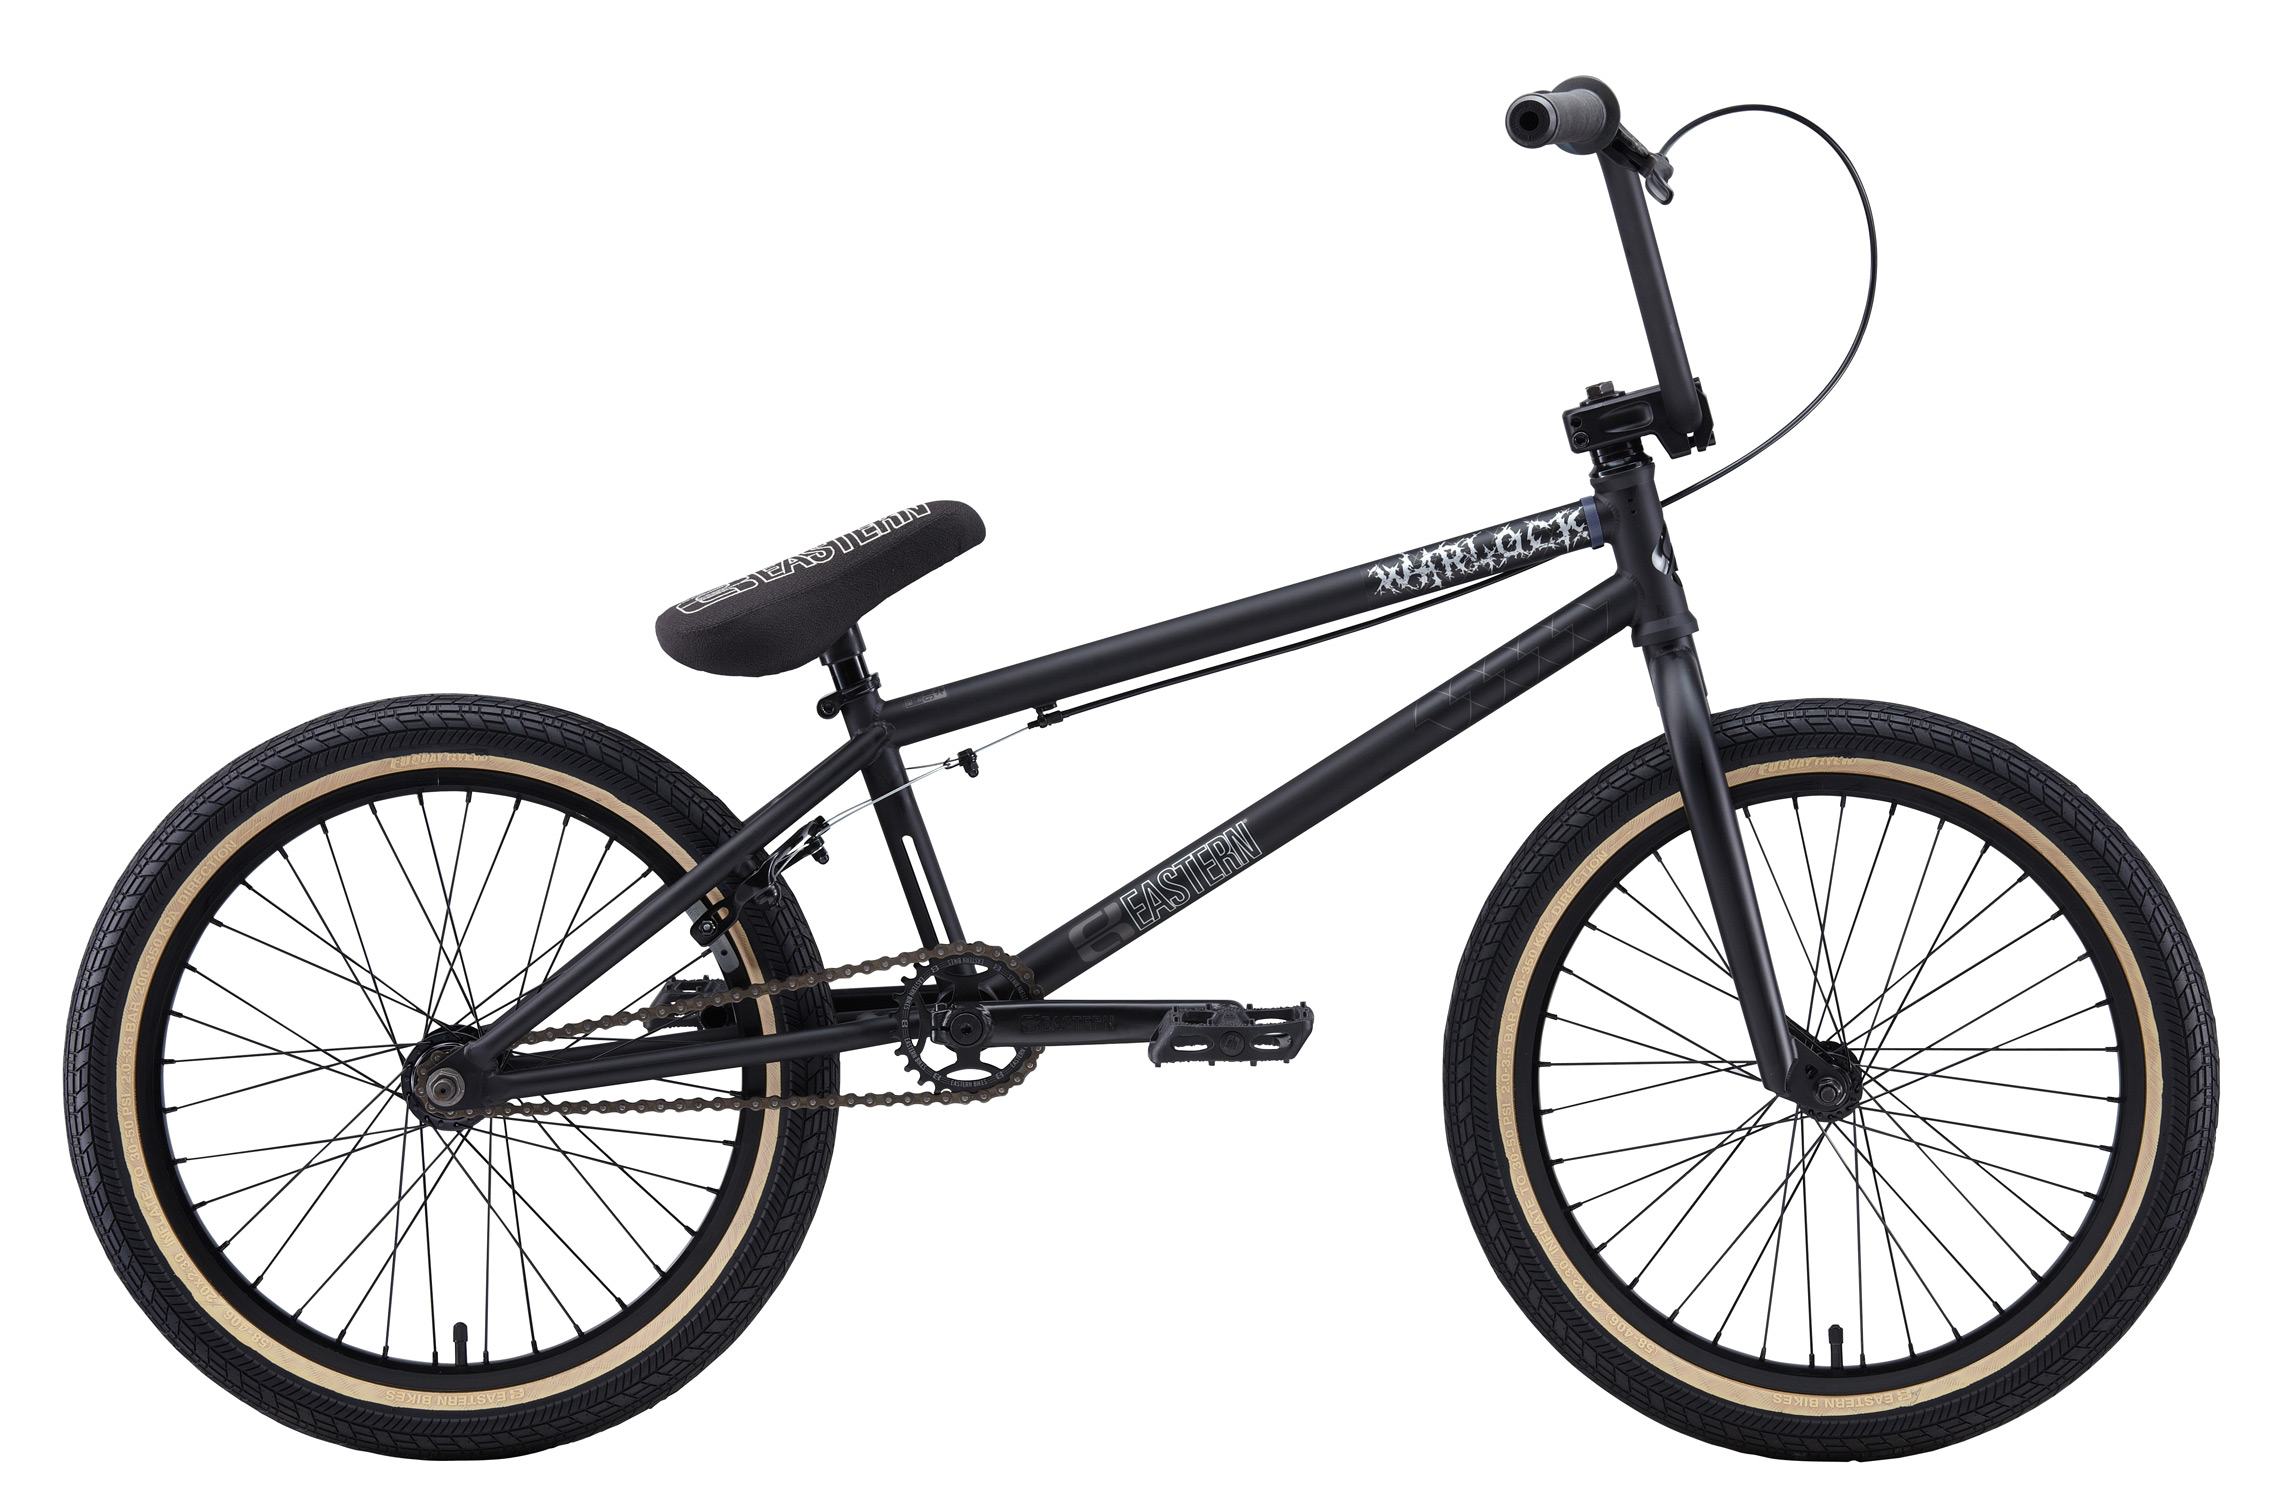 "BMX Key Features of the Eastern Warlock BMX Bike: WEIGHT: 25.3 LBS TOP TUBE SIZE: 21"" COLORS : Matte Black, Matte Burgandy/Hot Blue GEARING: 25/9 Micro-drive FRAME: Warlock frame w/ ""E"" logo cut out in Headtube, classic Eastern Seat tube cutout, 4130 chromoly downtube & integrated headset. Chromoly BB, dropouts and headtube, Holes for replaceable gyro tabs.***** 78mm wide BB to allow for wider tire clearance. Eastern Promise: lifetime warranty*, lifetime upgrade policy** FORK: Eastern FULL 4130 Chromoly w/ Tapered Legs & Hangfree Dropout Design BARS: 8.5""x 28.5"" , 1"" Upsweep, 12"" Backsweep HEADSET: Sealed Bearing 45/45 Integrated BB: Sealed Bearing, Mid Bottom Bracket PEDALS: Eastern Crown pedals GRIPS: Eastern Truffle Grip STEM: Eastern Forged Alloy Frontload SPROCKET: Eastern Phorcys 25T steel CRANKS: Tubular chromoly heat-treated 3pc. cranks with 8 spline spindle SEAT: Eastern logo 1pc. seat and alloy post combo, Durable Nylon Cover, and Stitched Logo SEATPOST: Alloy post included with seat TIRES: Eastern Fuquay Flyer 20""x 2.3"" OEM FRONT HUB: Sealed Bearing, 36 hole Alloy Shell, 3/8"" Chromoly axle REAR HUB: Fully Sealed 36 hole cassette hub, Forged Alloy Shell, 1pc. 9-tooth chromoly driver, 14mm chromoly axle, 5 sealed bearings. RIMS: Double Wall Alloy, 36 Hole REAR BRAKES: Tektro Forged Alloy U-Brake / Straight Cable / Eastern 6061 Forged Lever w/ Hinged Clamp FREEWHEEL: Sealed bearing 9-tooth 1pc. driver CHAIN: KMC SEAT CLAMP: Eastern Slant Forged PEGS: 2 pegs - $293.95"